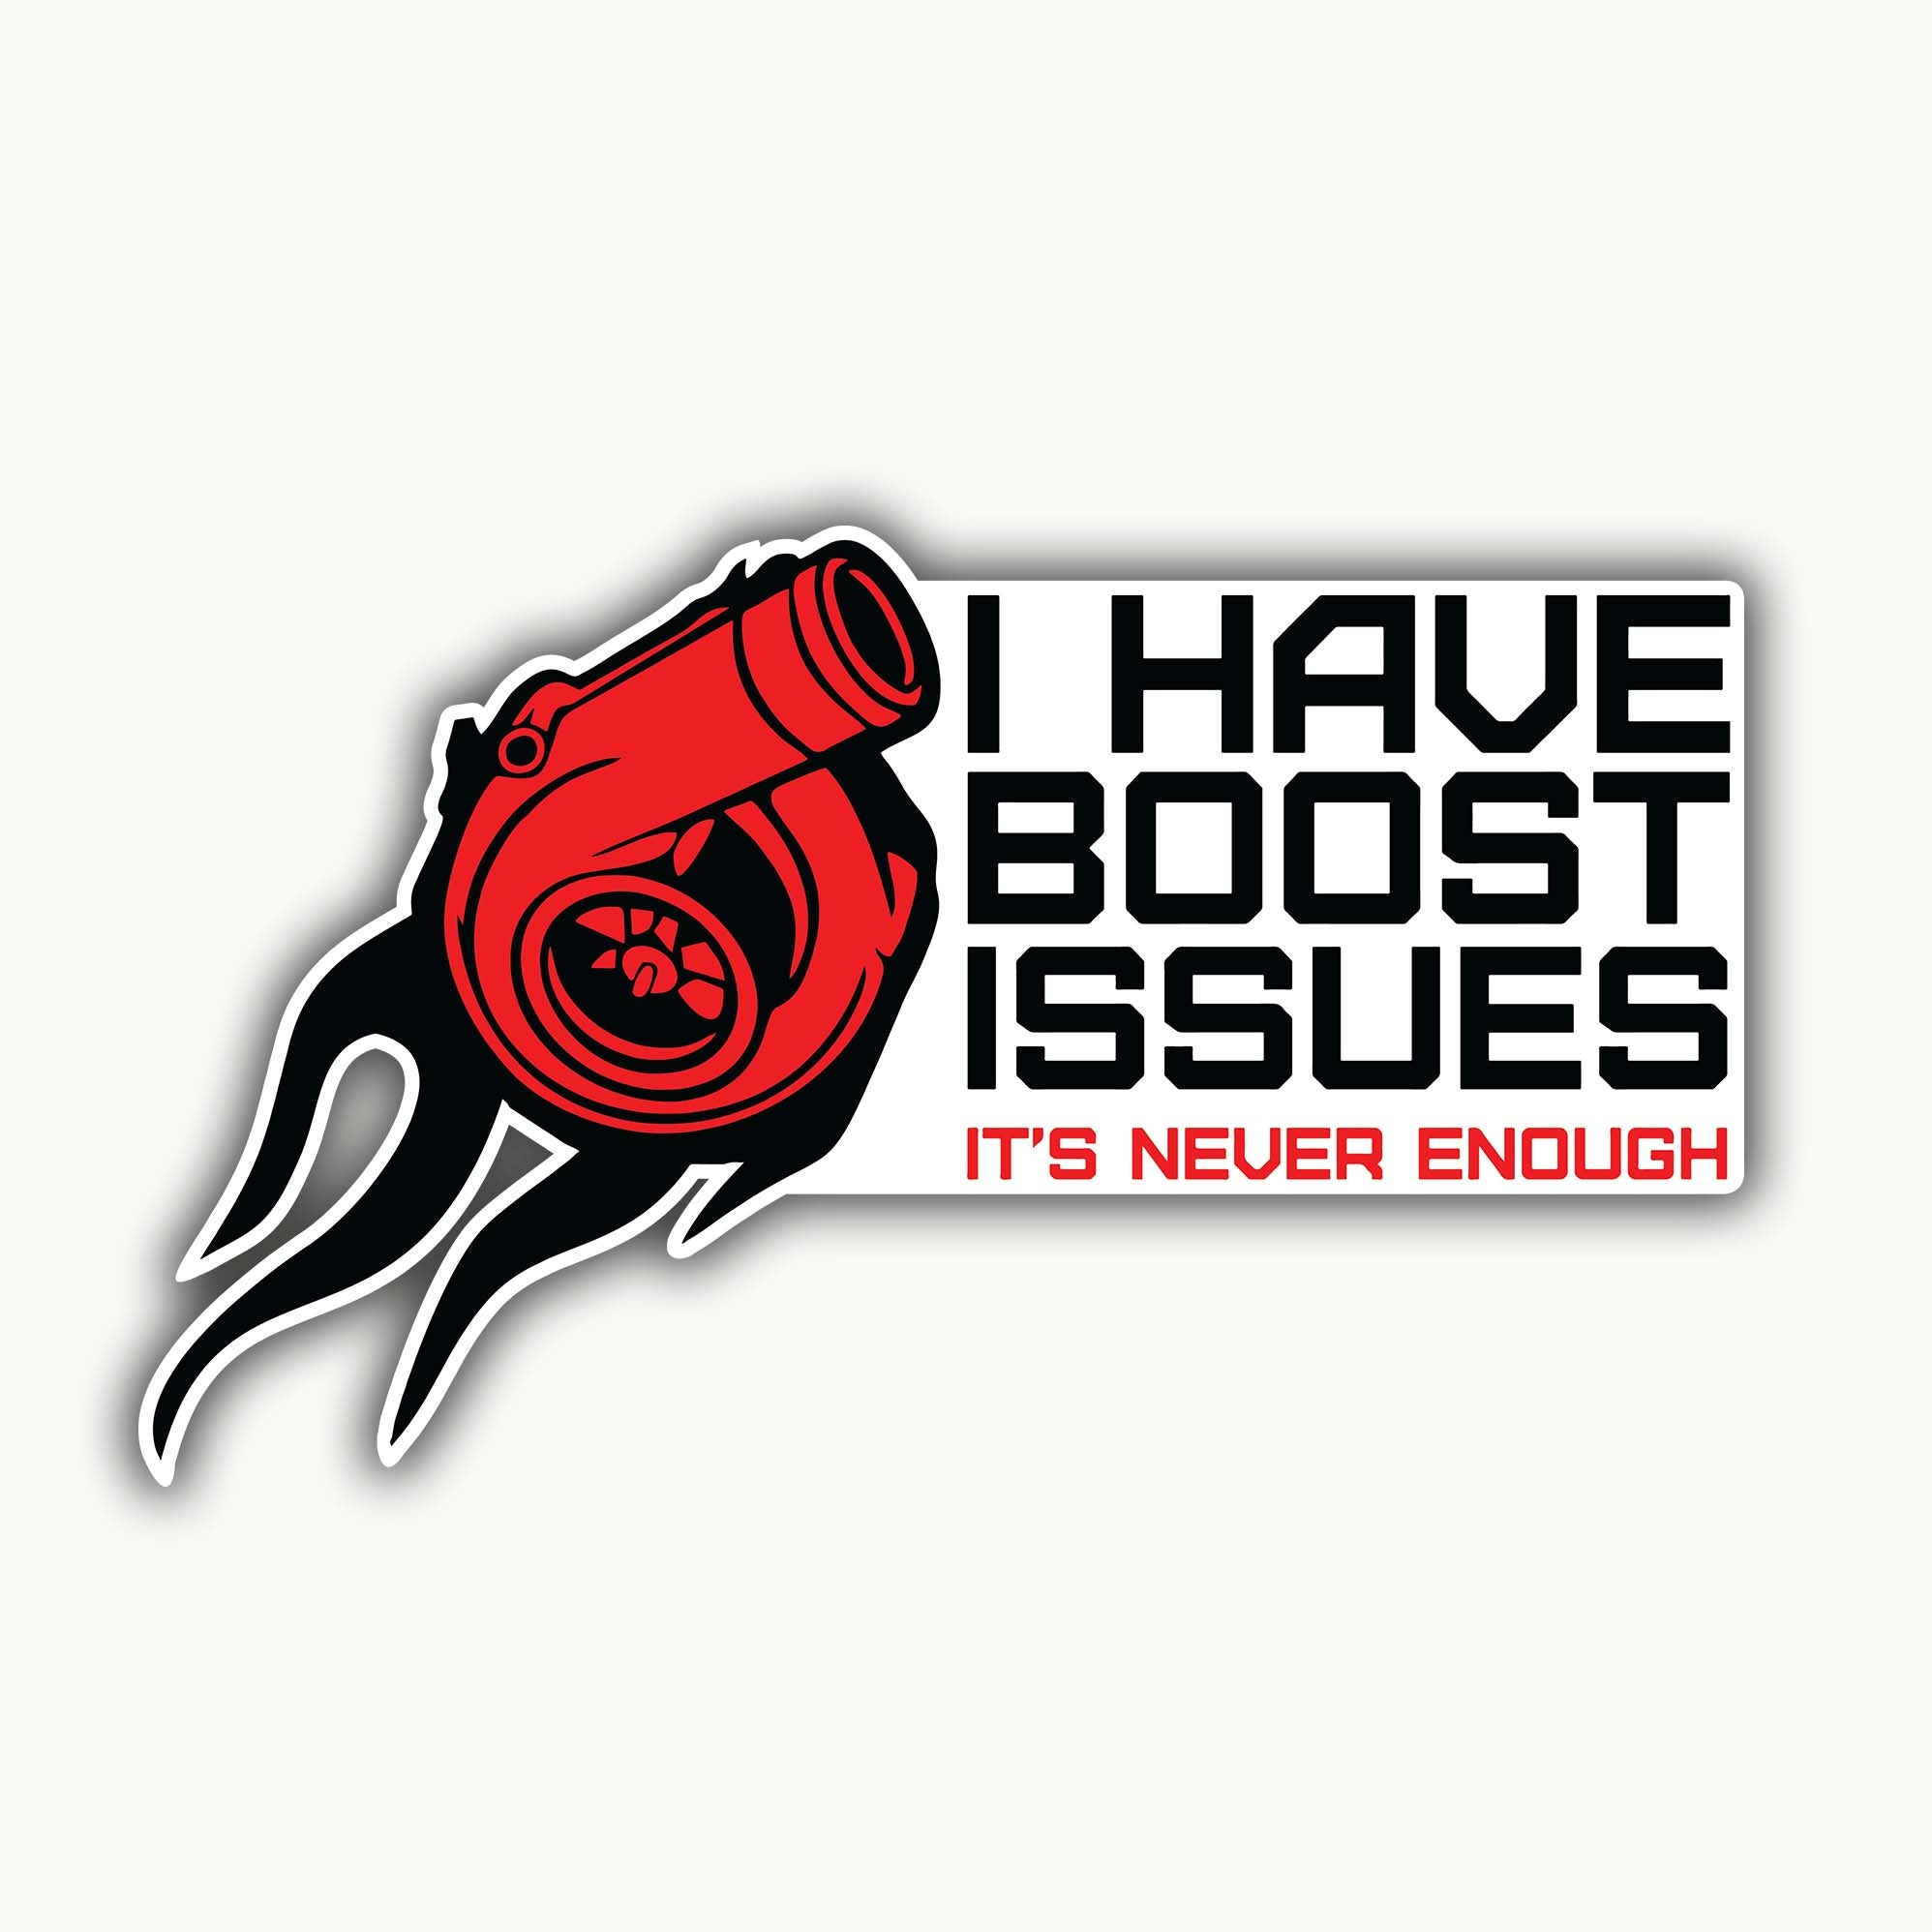 Buy-I-Have-Boost-Issues-Stickers| 100kmph